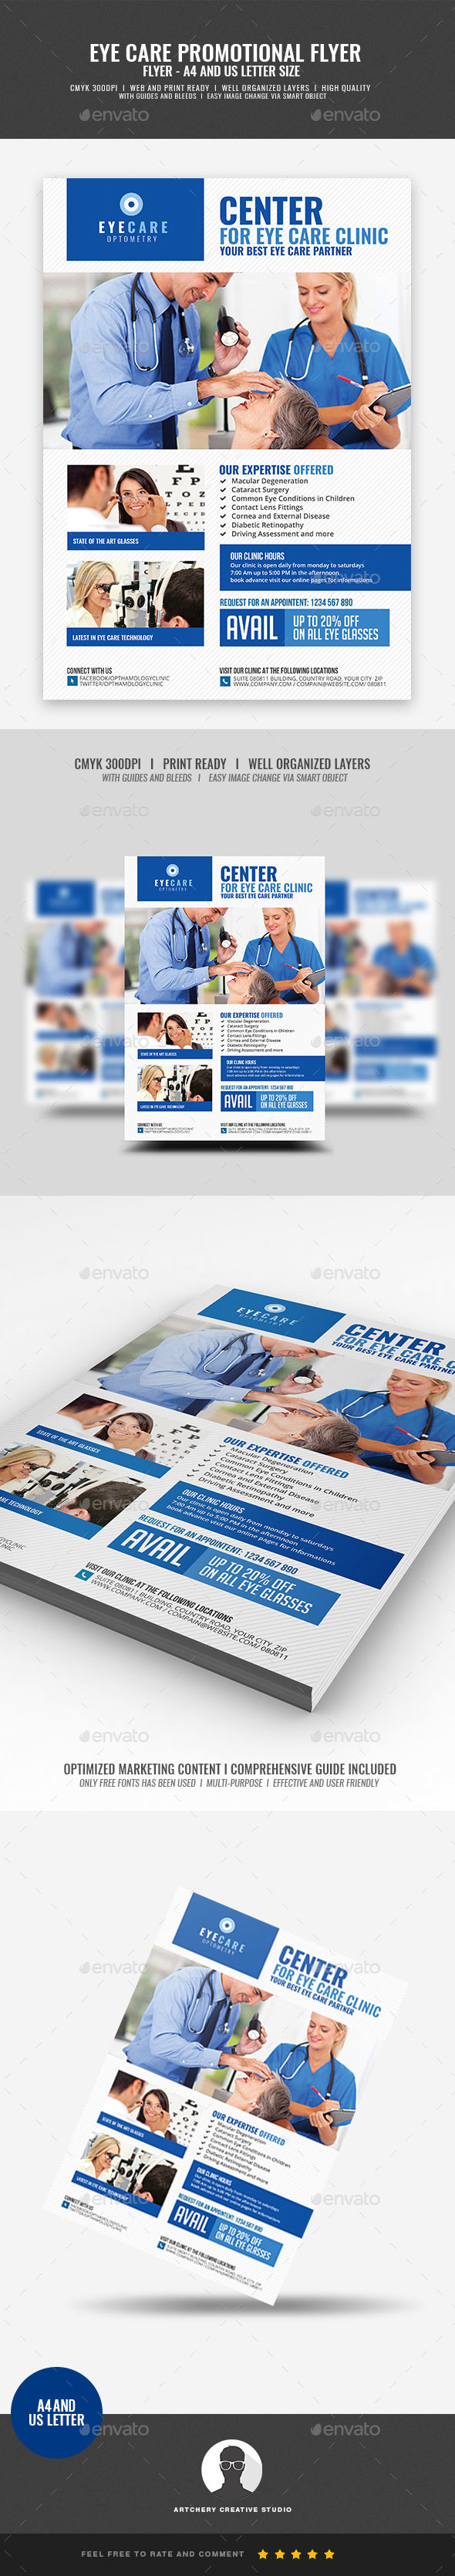 Optometrist Eye Care Services - Corporate Flyers